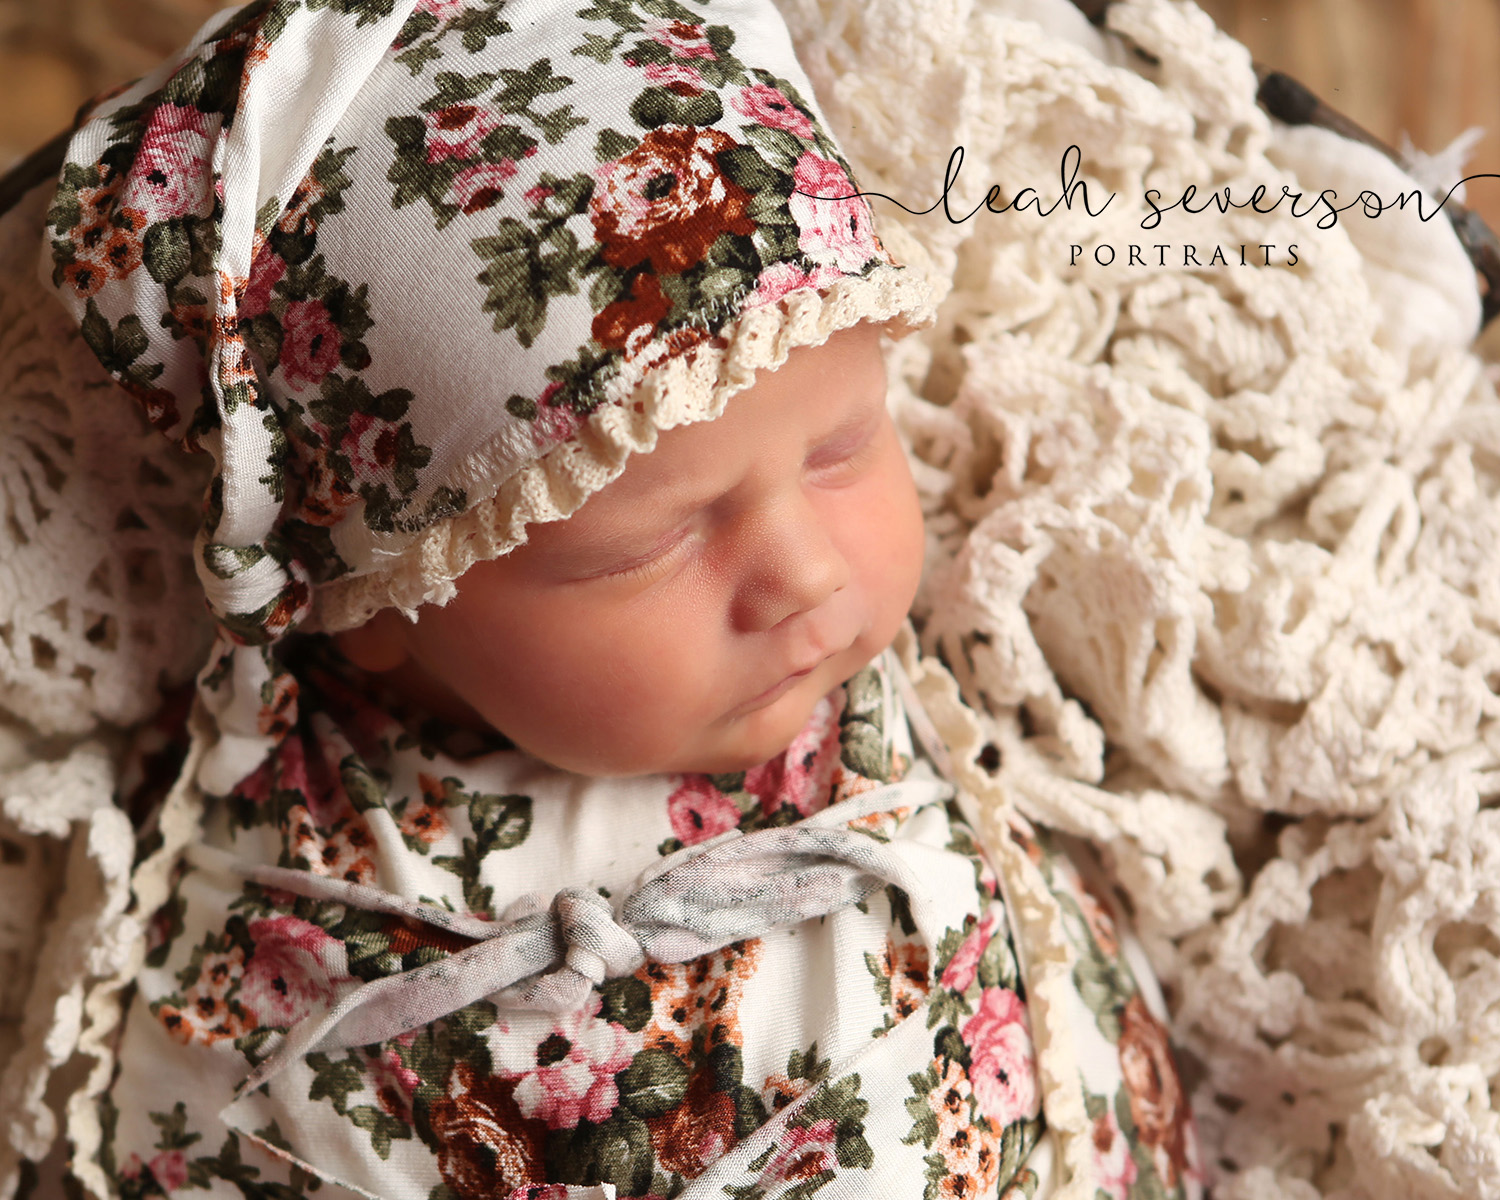 newborn photo shoot near me